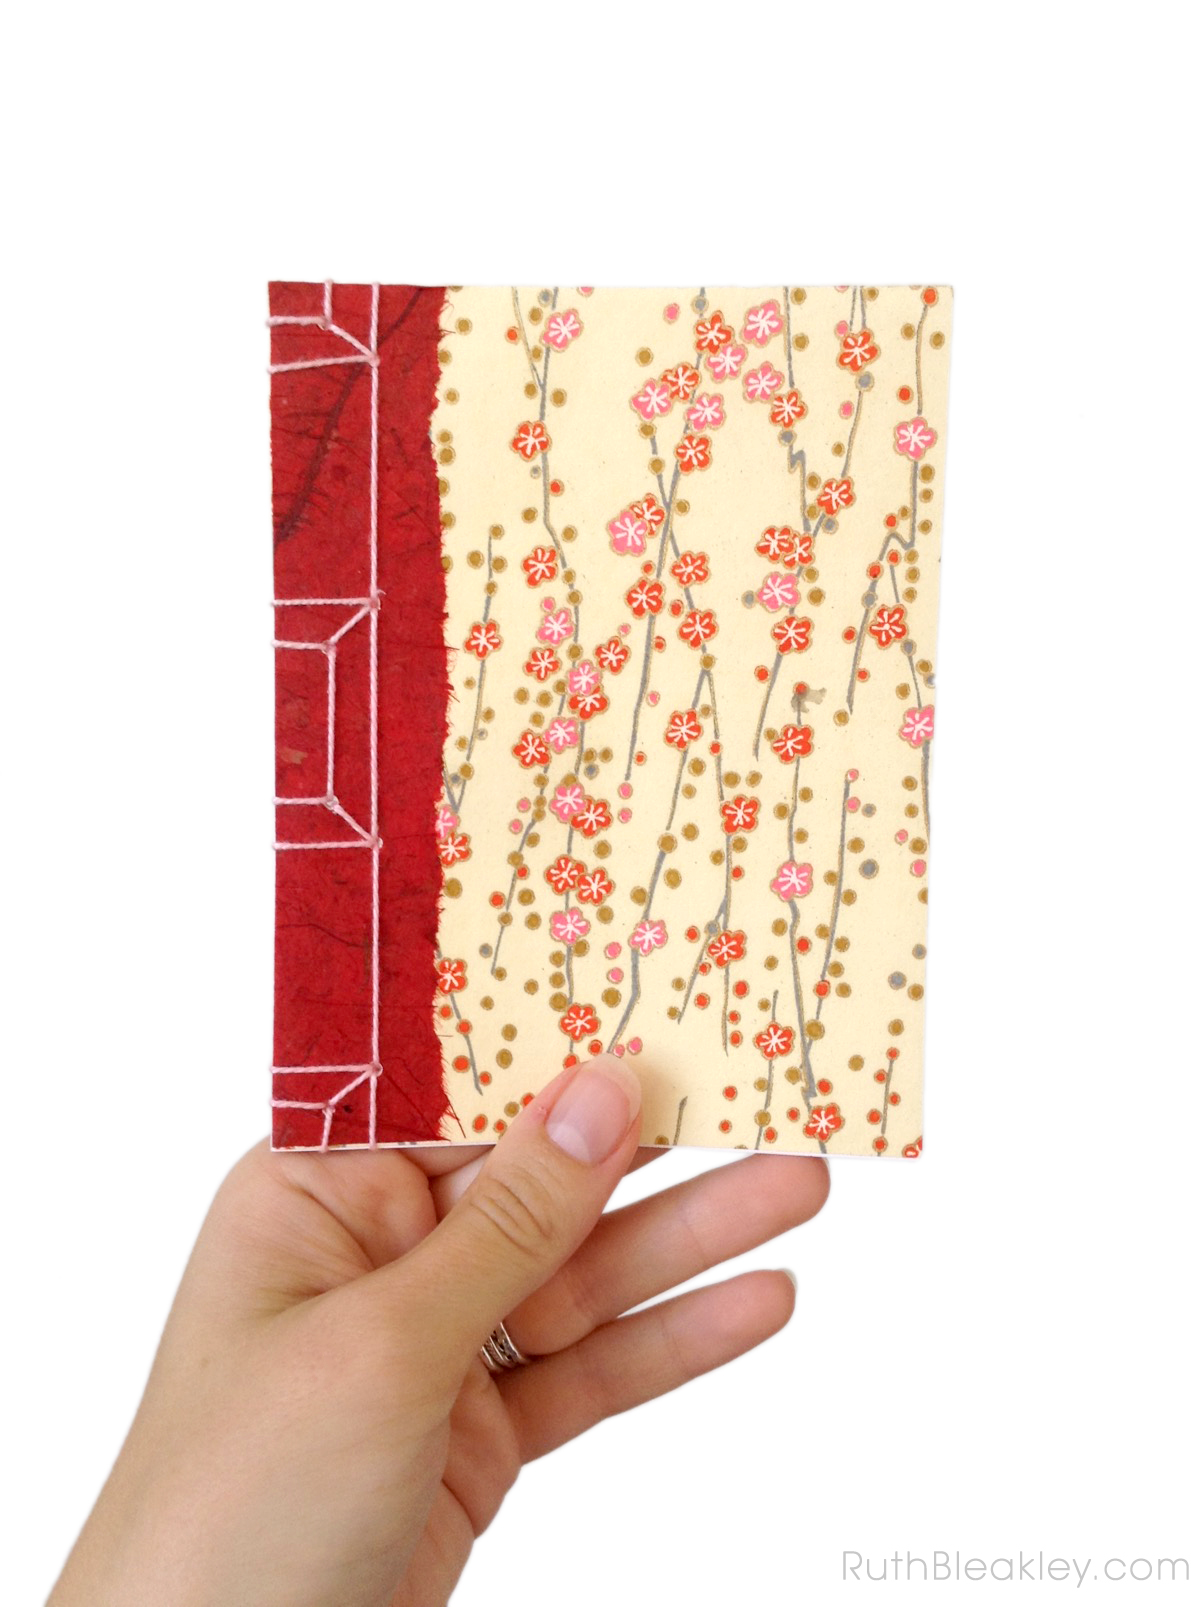 Cherry Blossom Chiyogami Notebook handmade by Ruth Bleakley